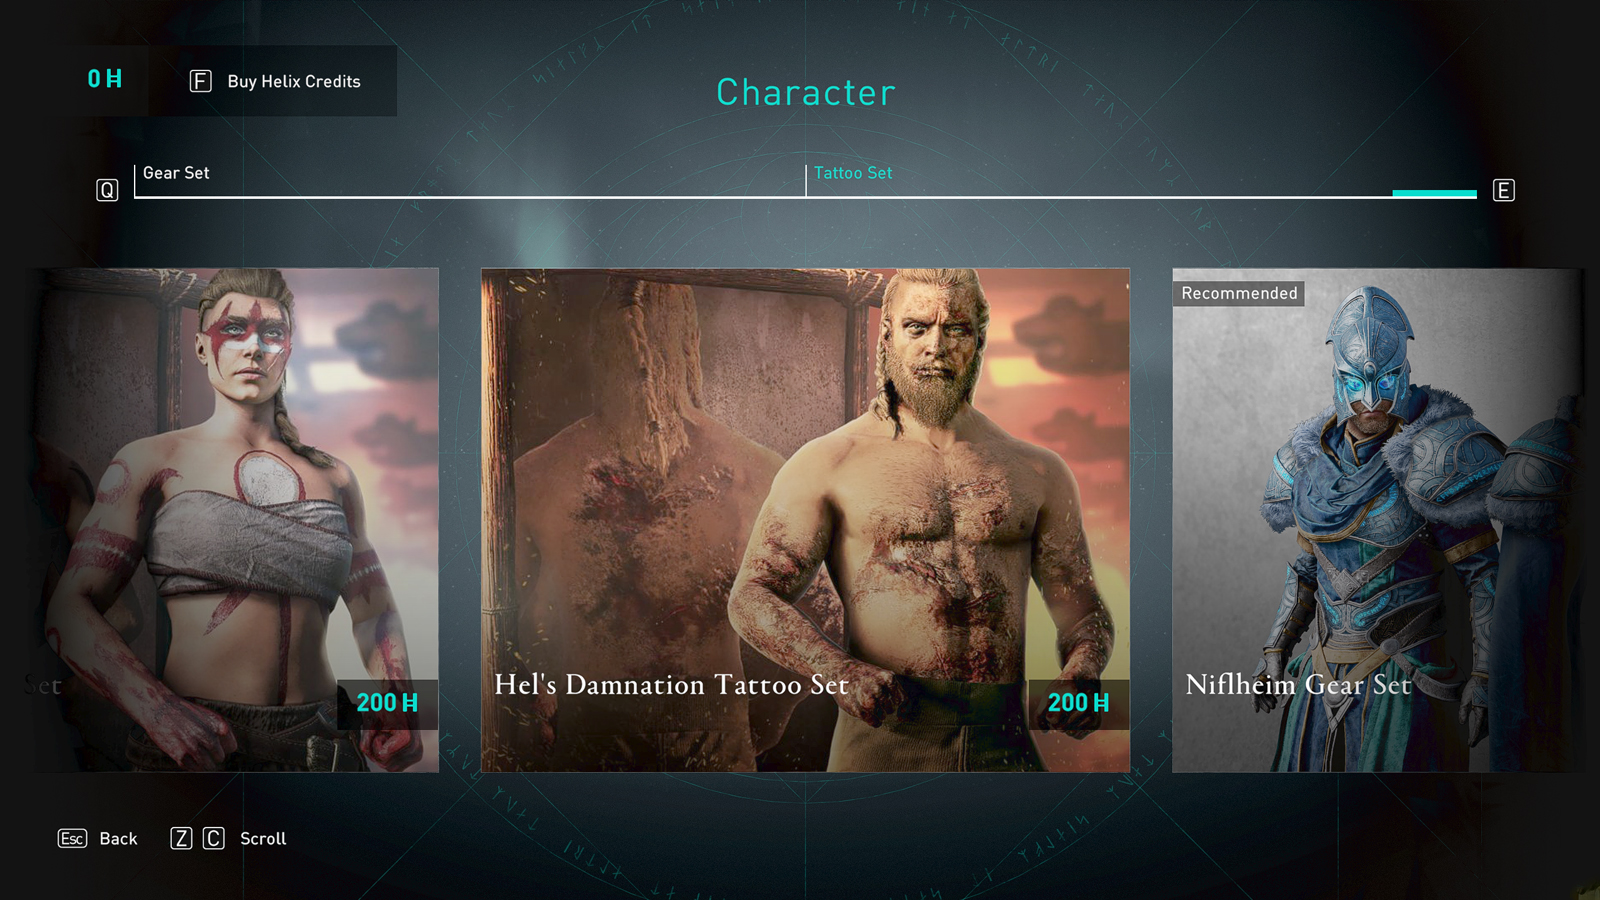 He's Damnation Tattoo Set in Assassin's Creed Valhalla store